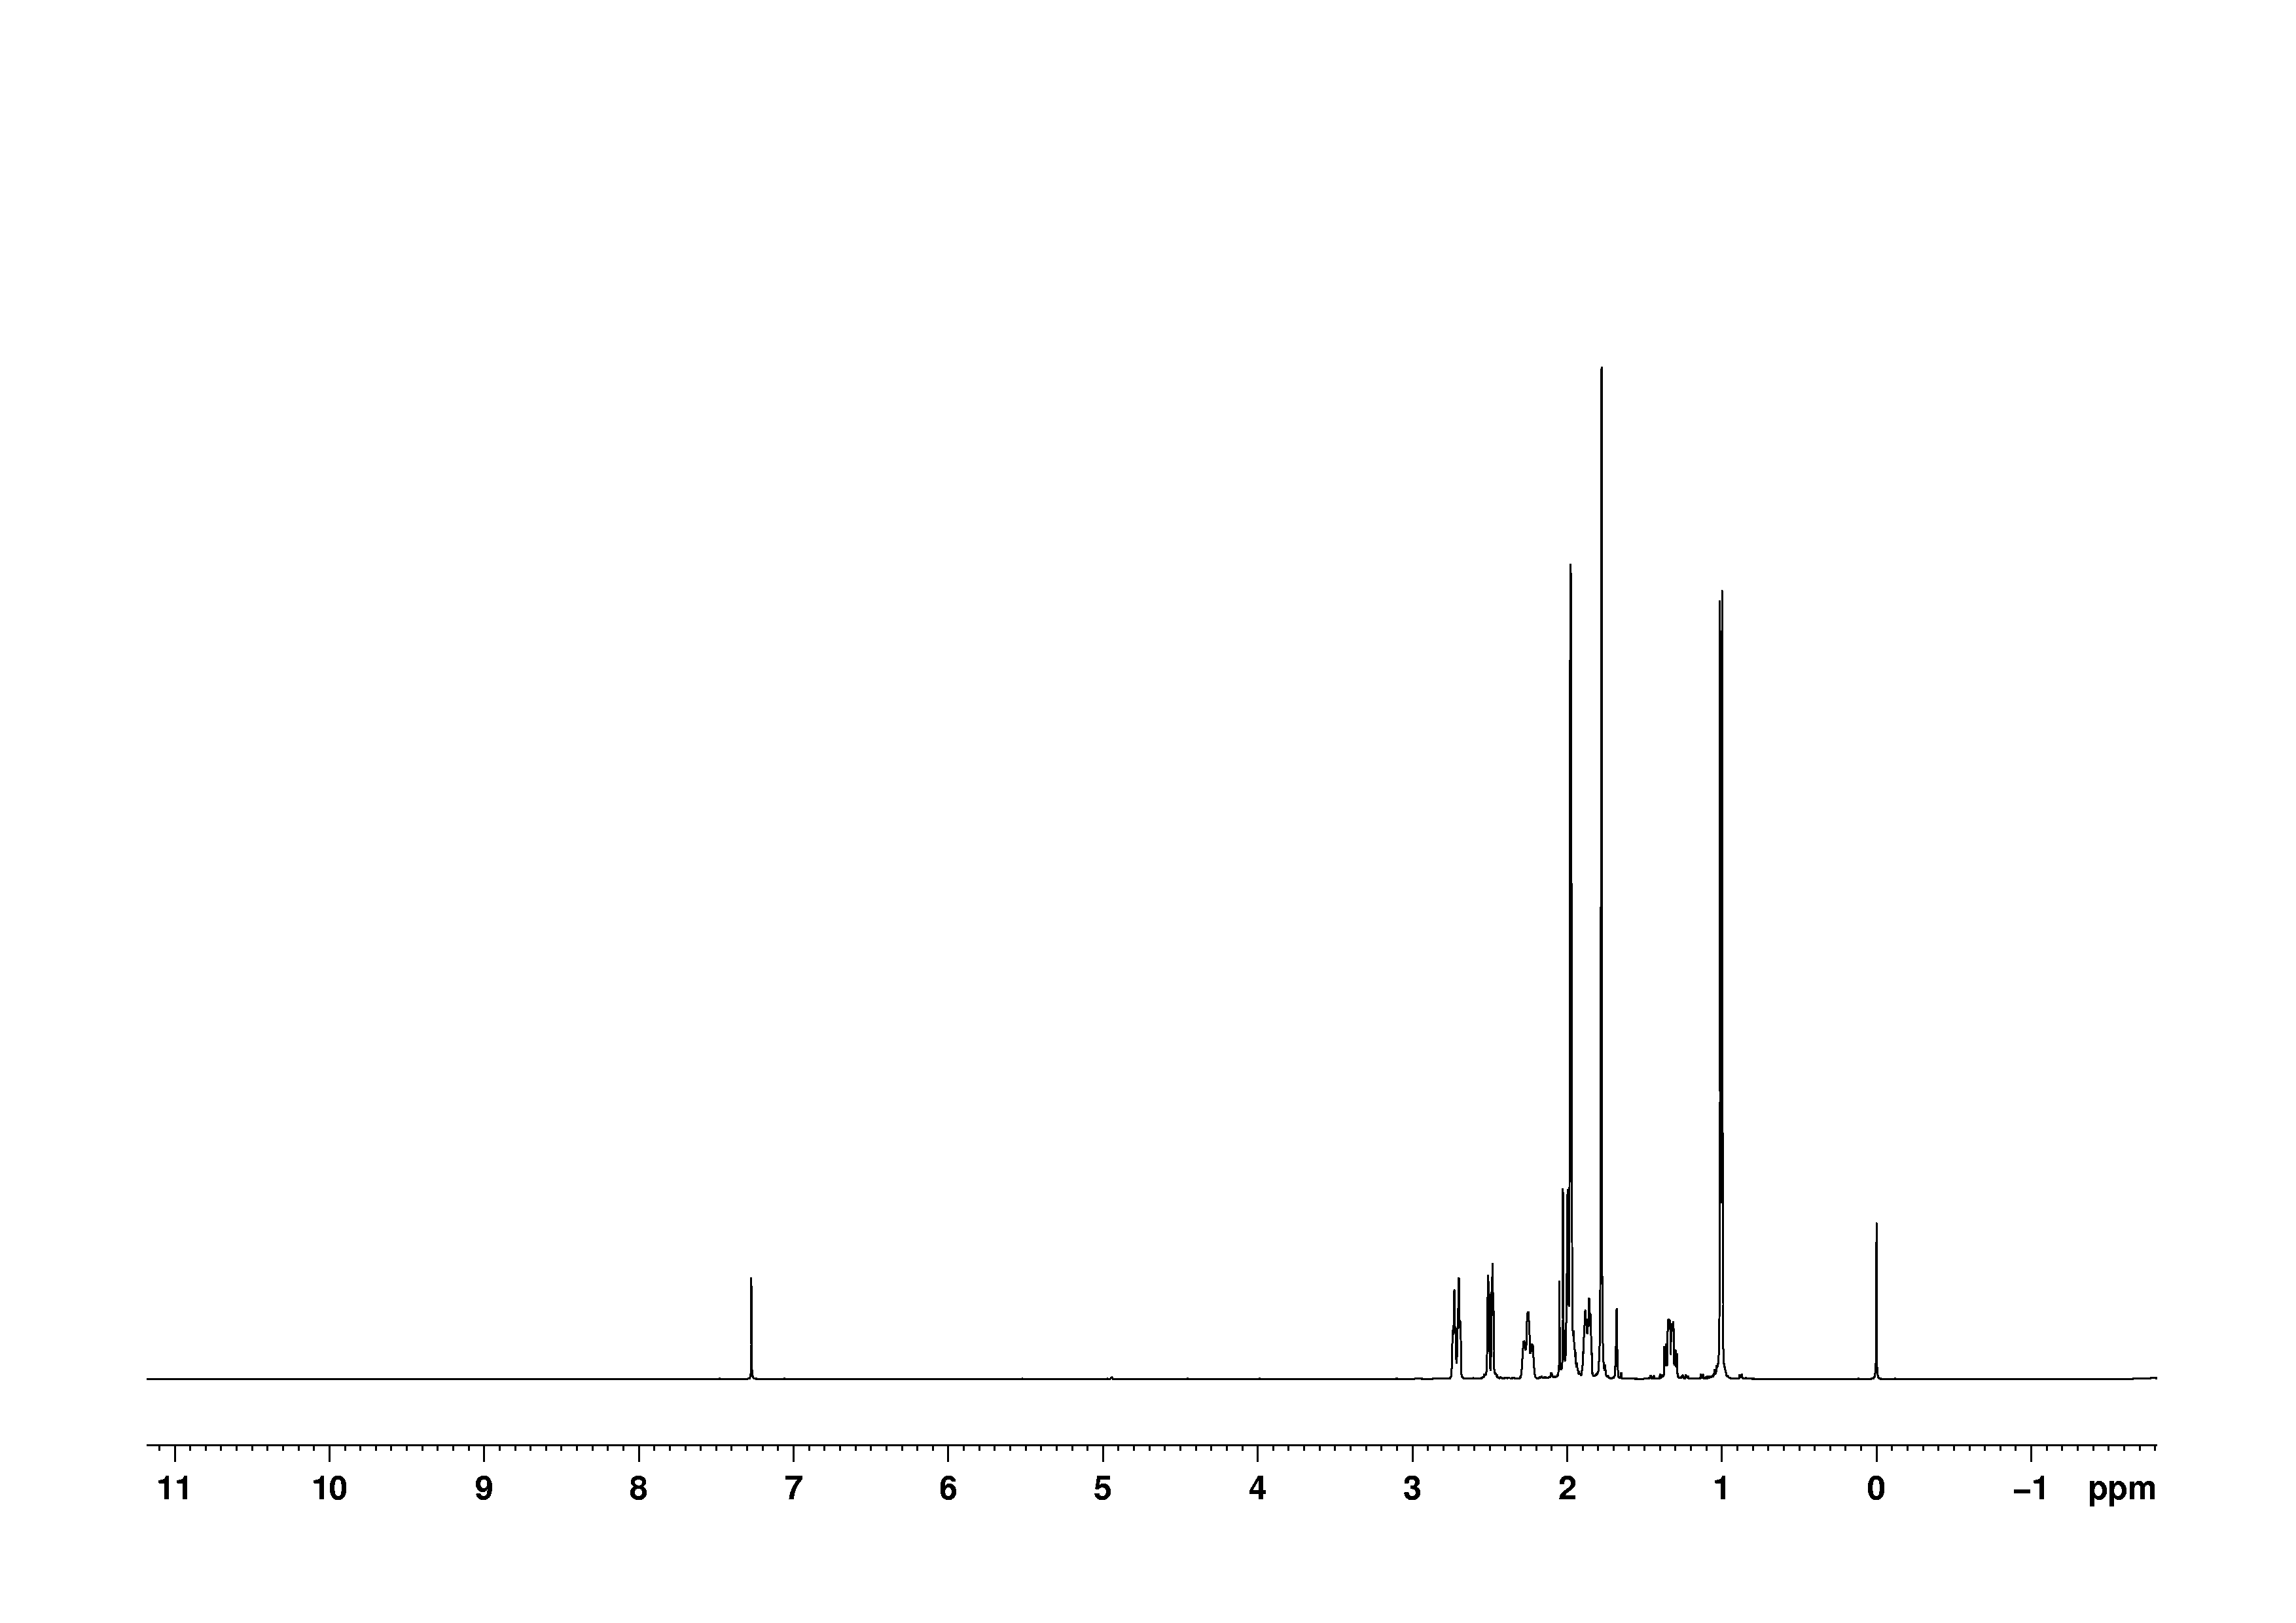 1D 1H, n/a spectrum for (+)-Pulegone